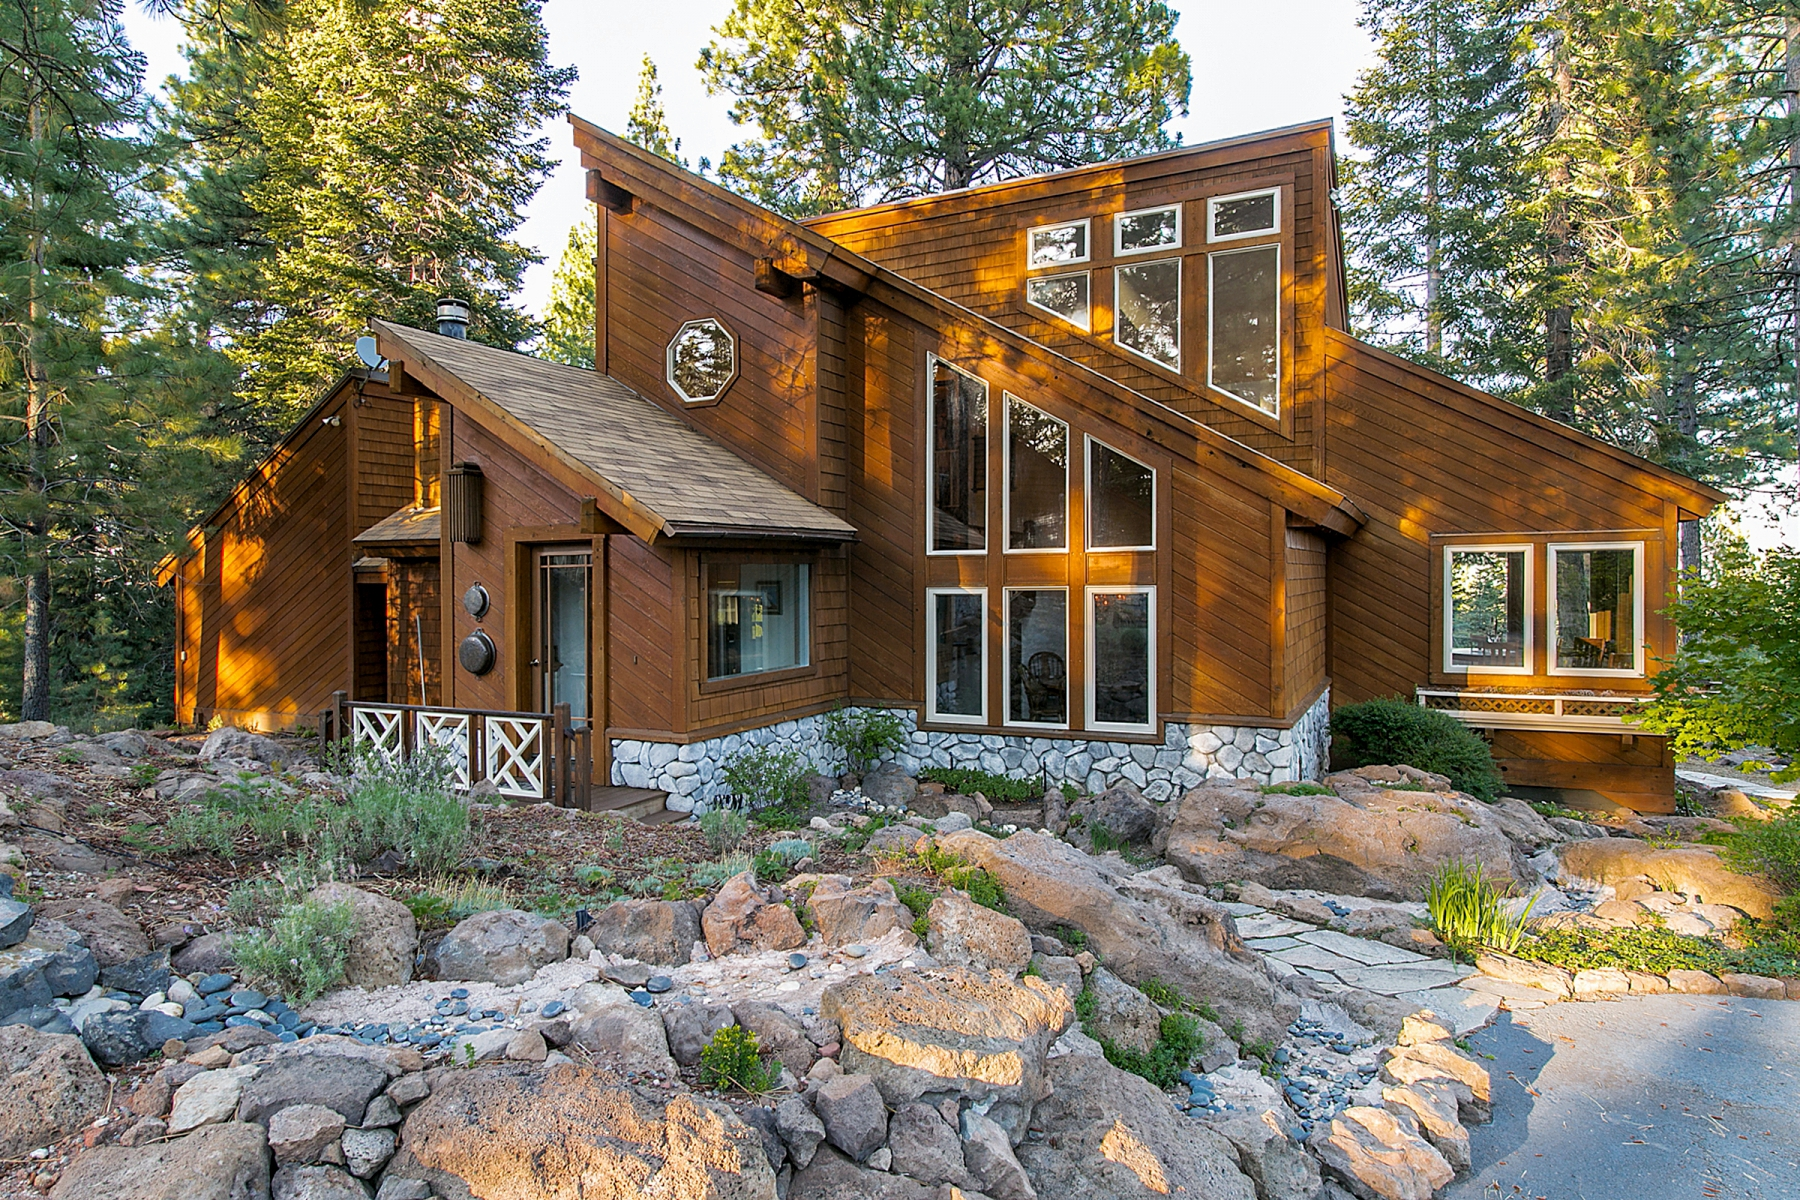 Single Family Home for Active at 10601 Palisades Drive Truckee, California 96161 United States